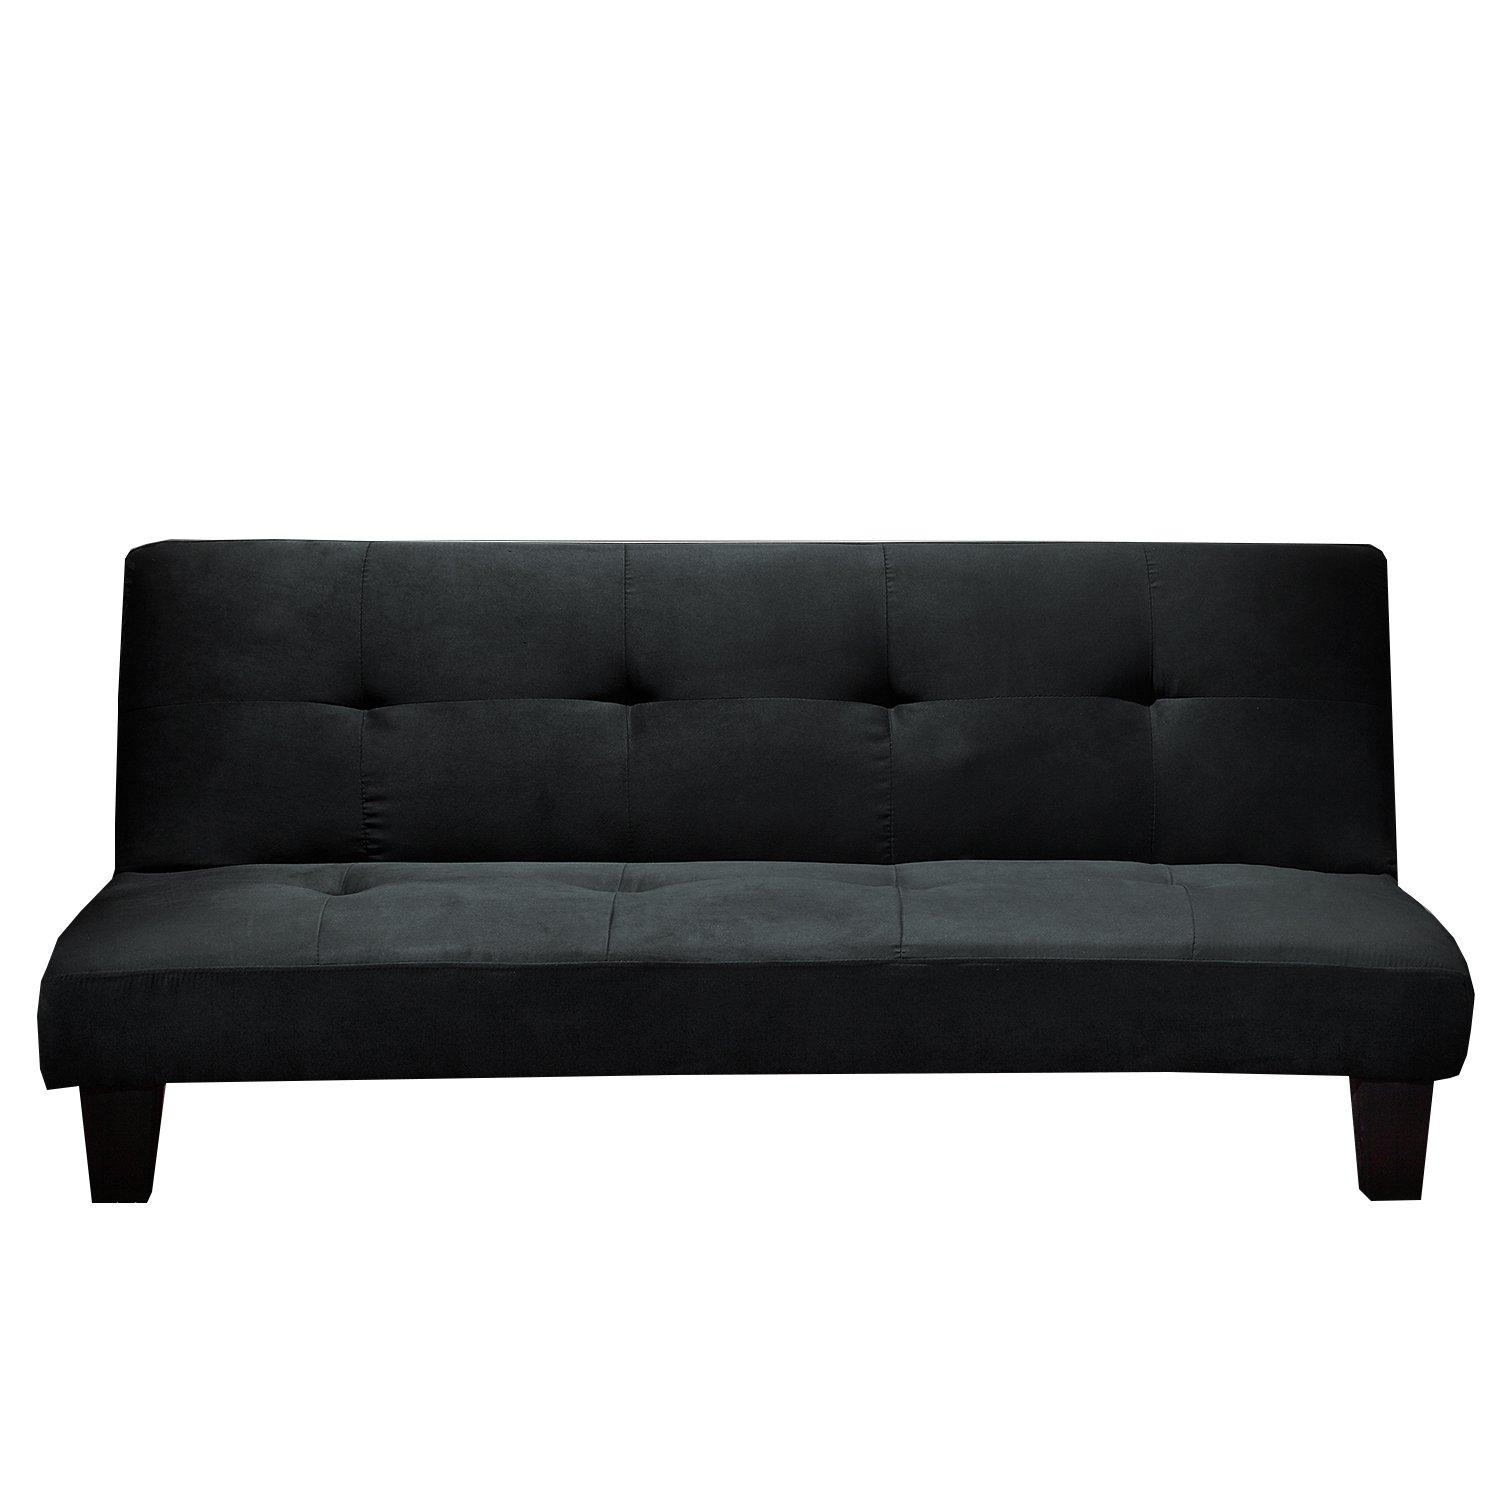 Living Room: Ava Velvet Tufted Sleeper Sofa | Contemporary Futon Pertaining To Ava Velvet Tufted Sleeper Sofas (View 8 of 20)